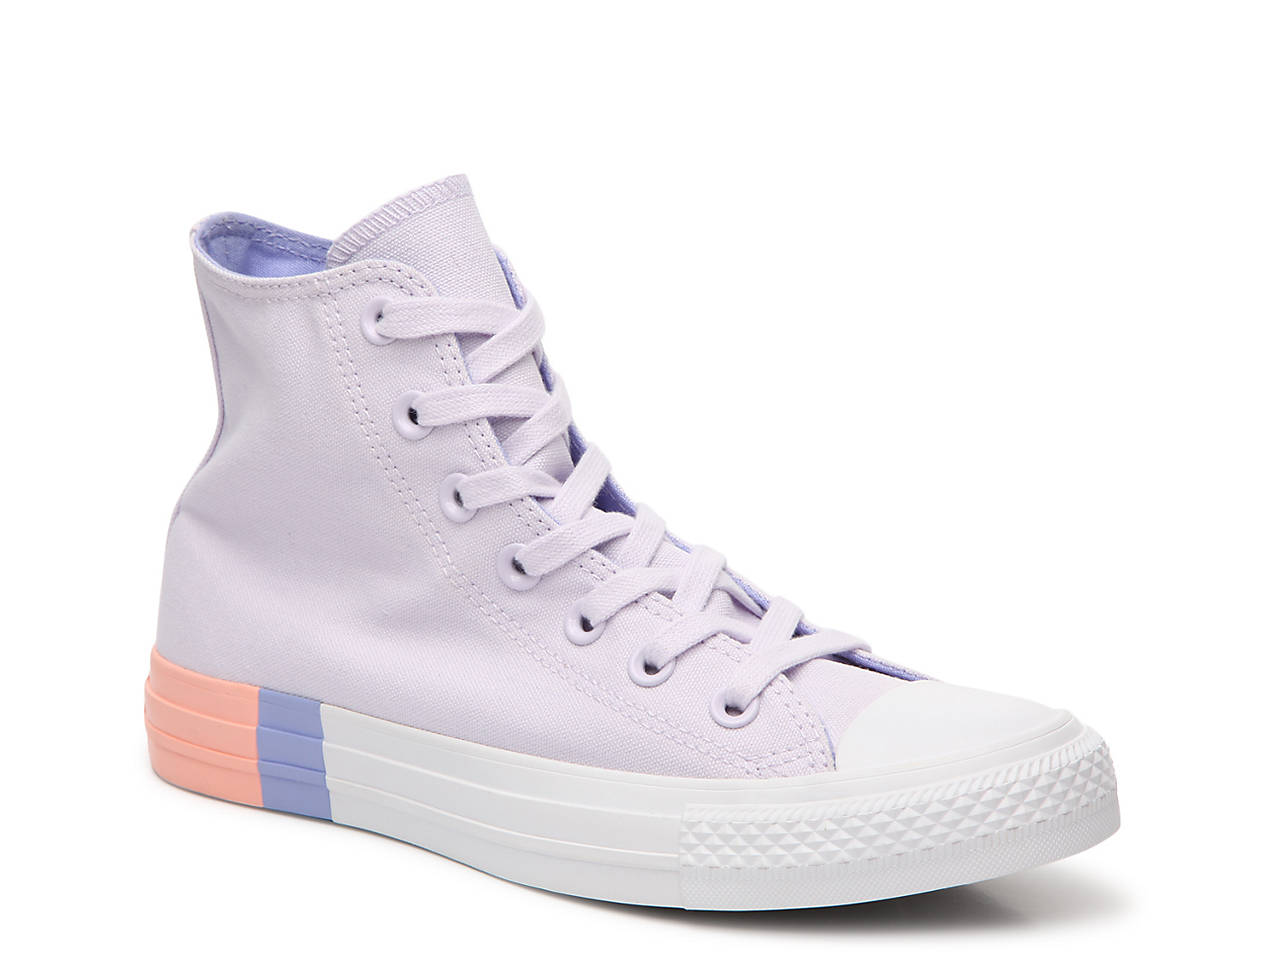 c0473abf41be3 Chuck Taylor All Star Hi Block High-Top Sneaker - Women's